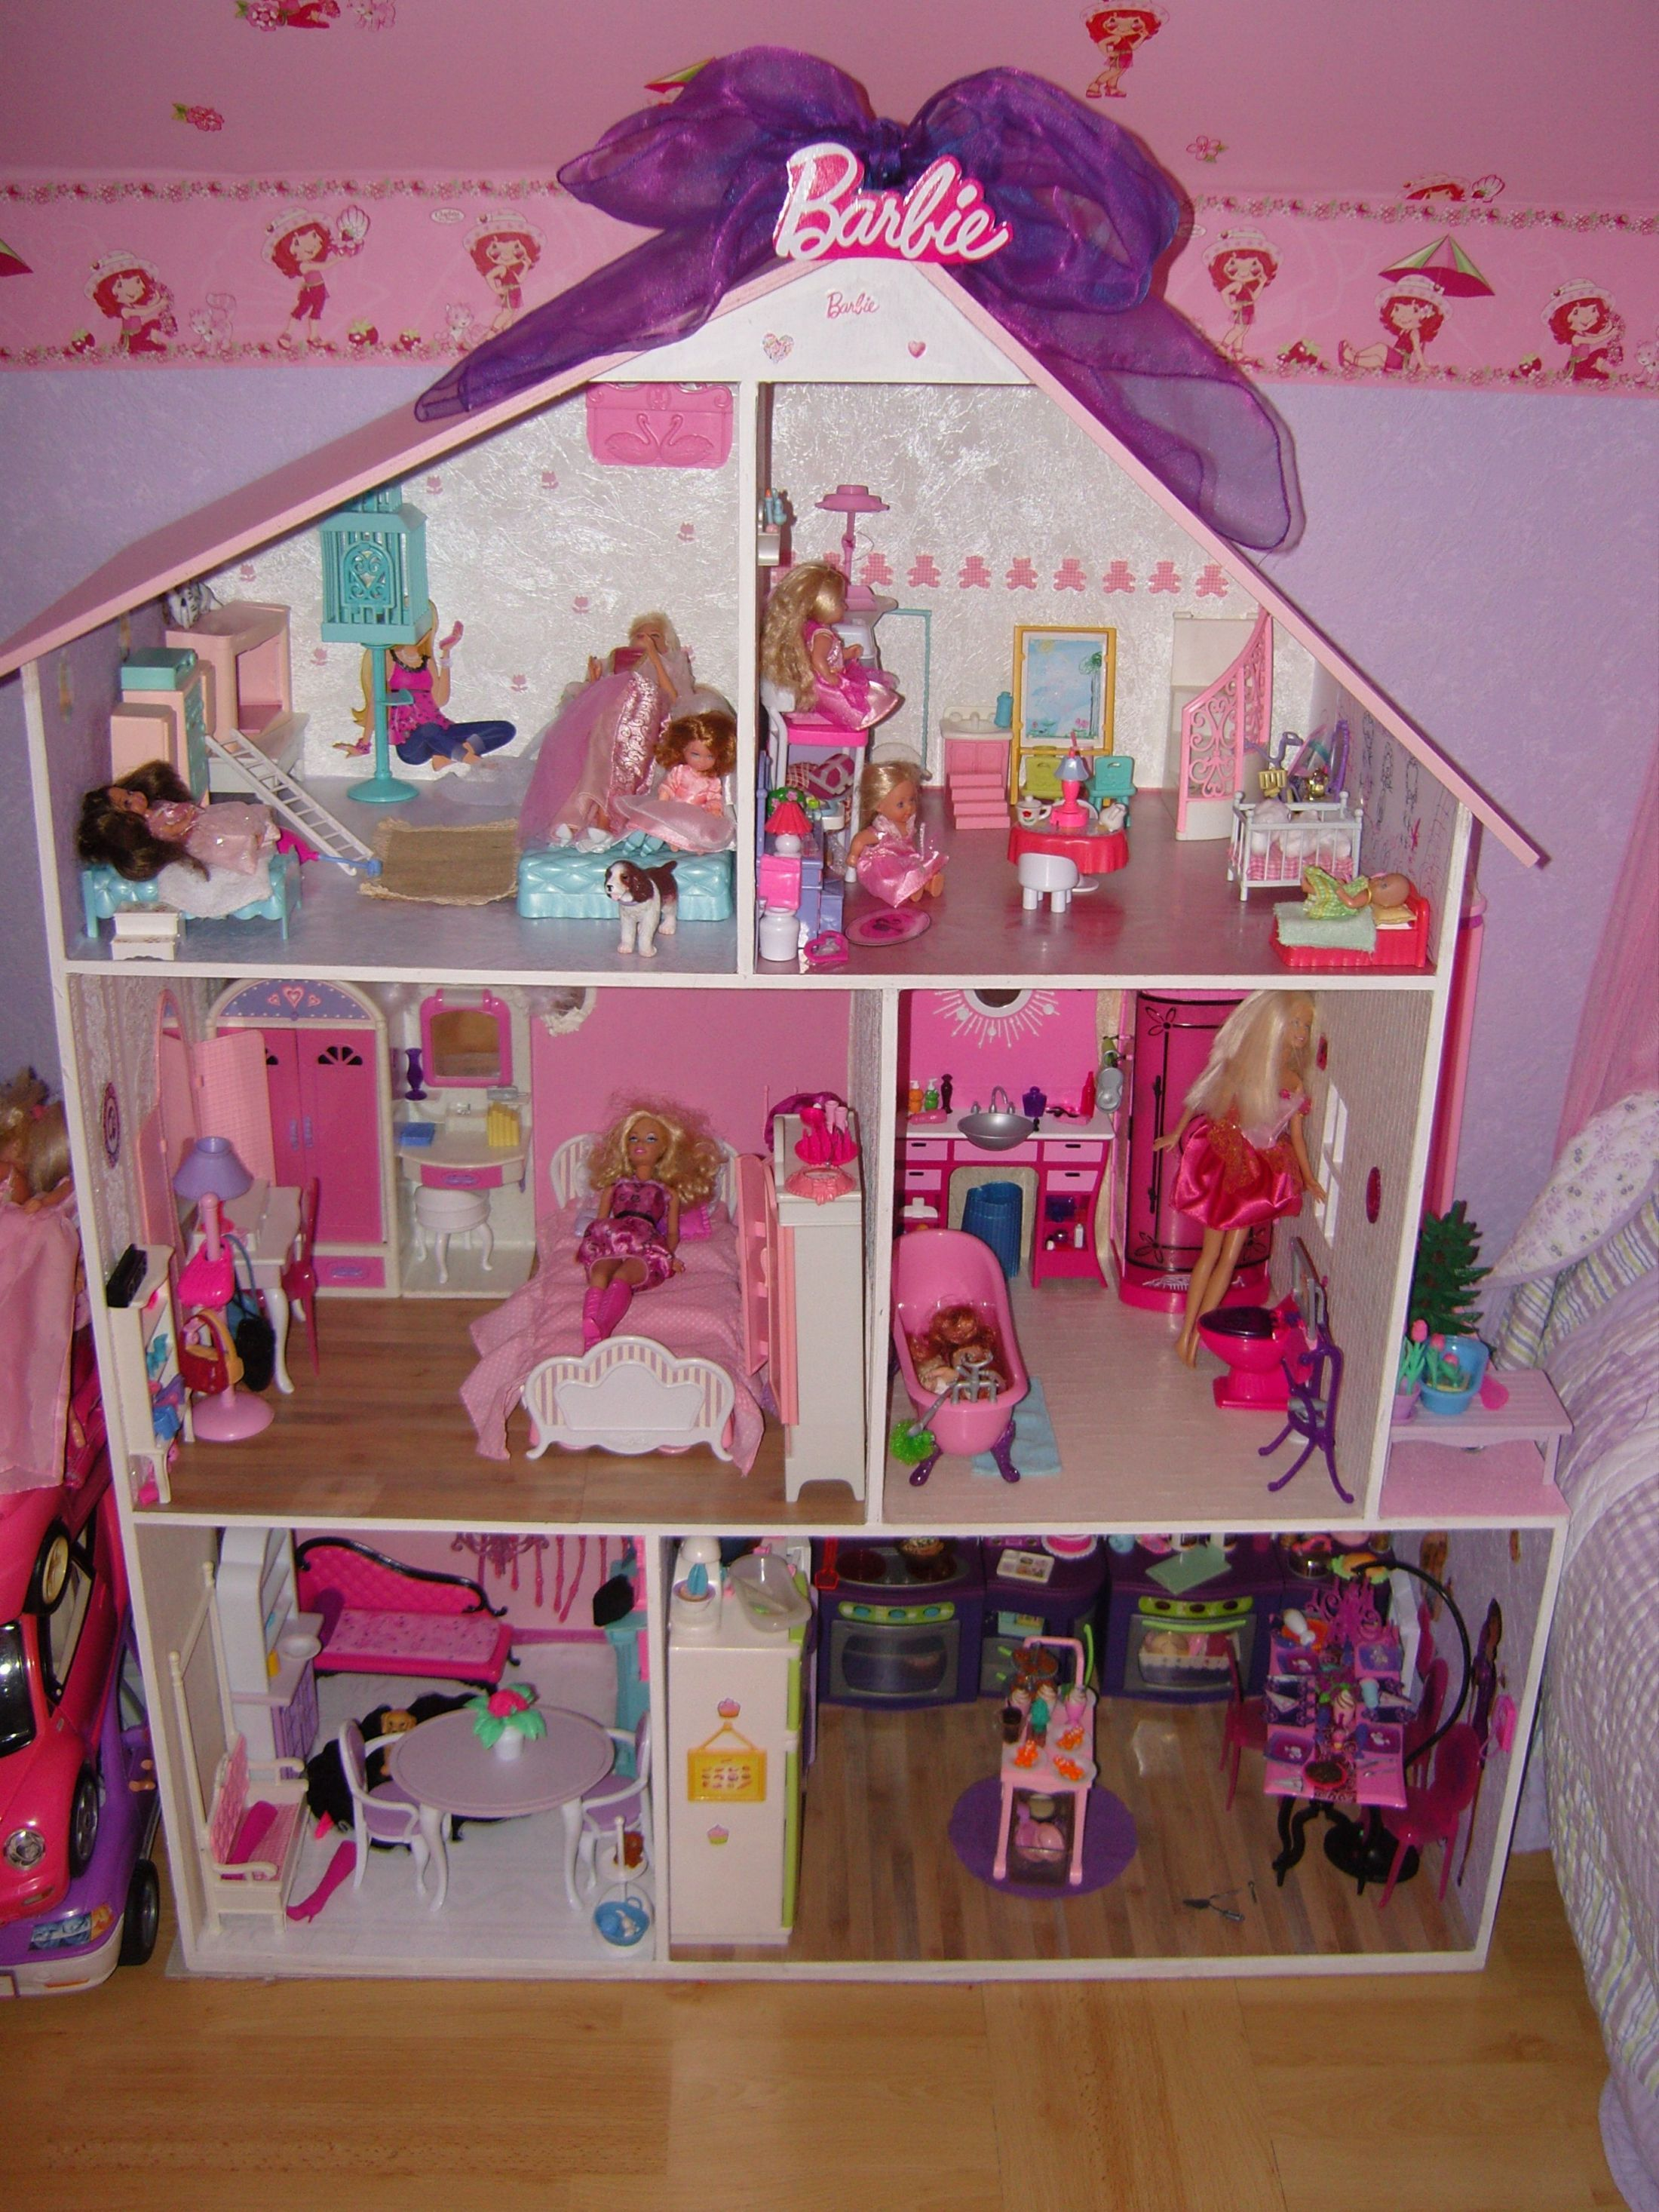 Decorer la maison de barbie id e inspirante for Maison a decorer